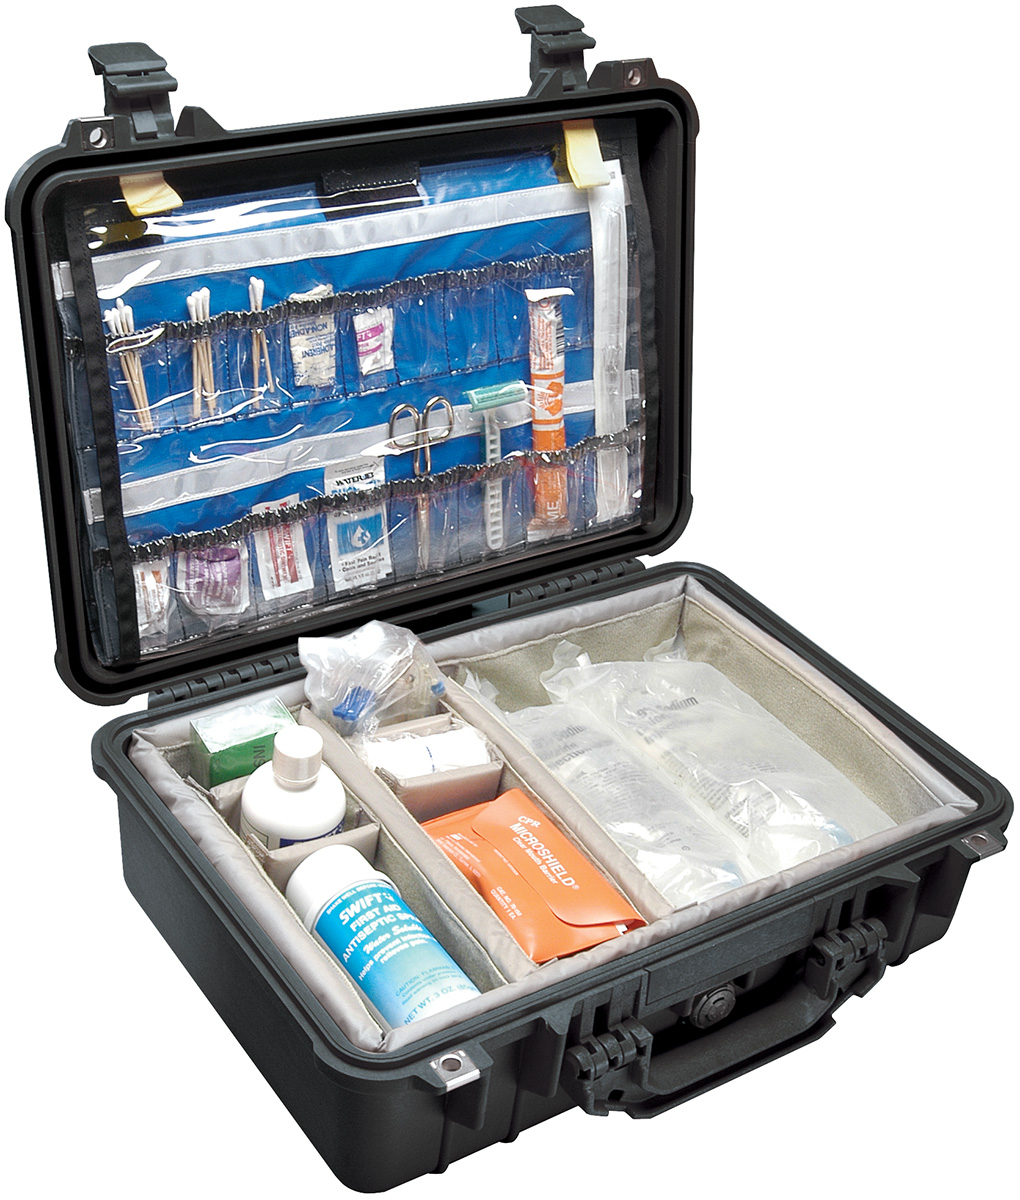 pelican peli products 1500EMS ems medical first aid